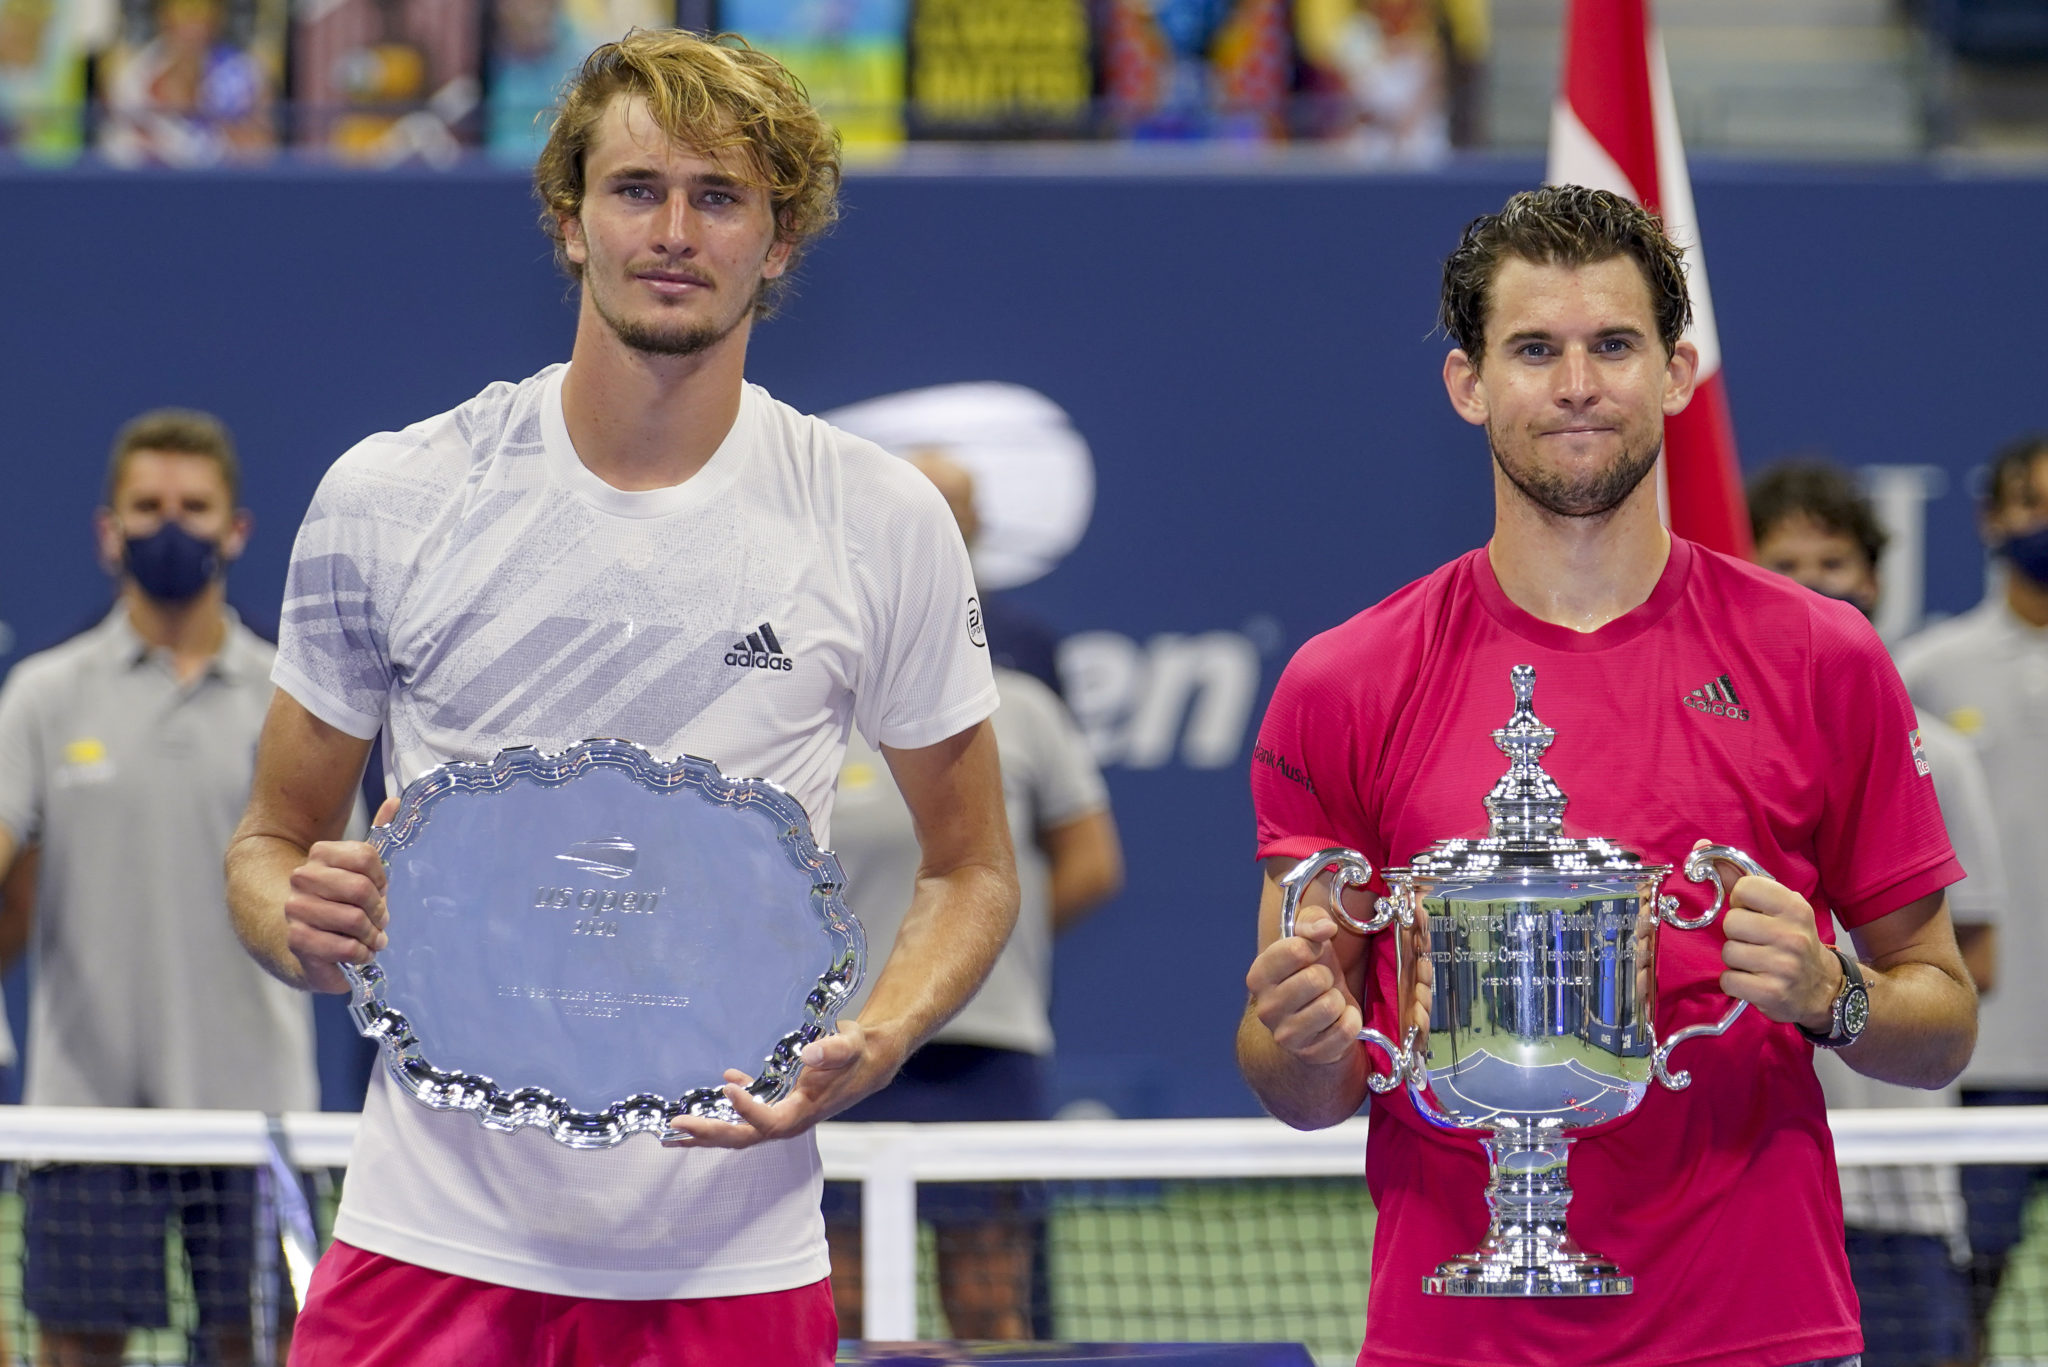 Dominic Thiem and Alexander Zverev pose after the men's 2020 US Open final